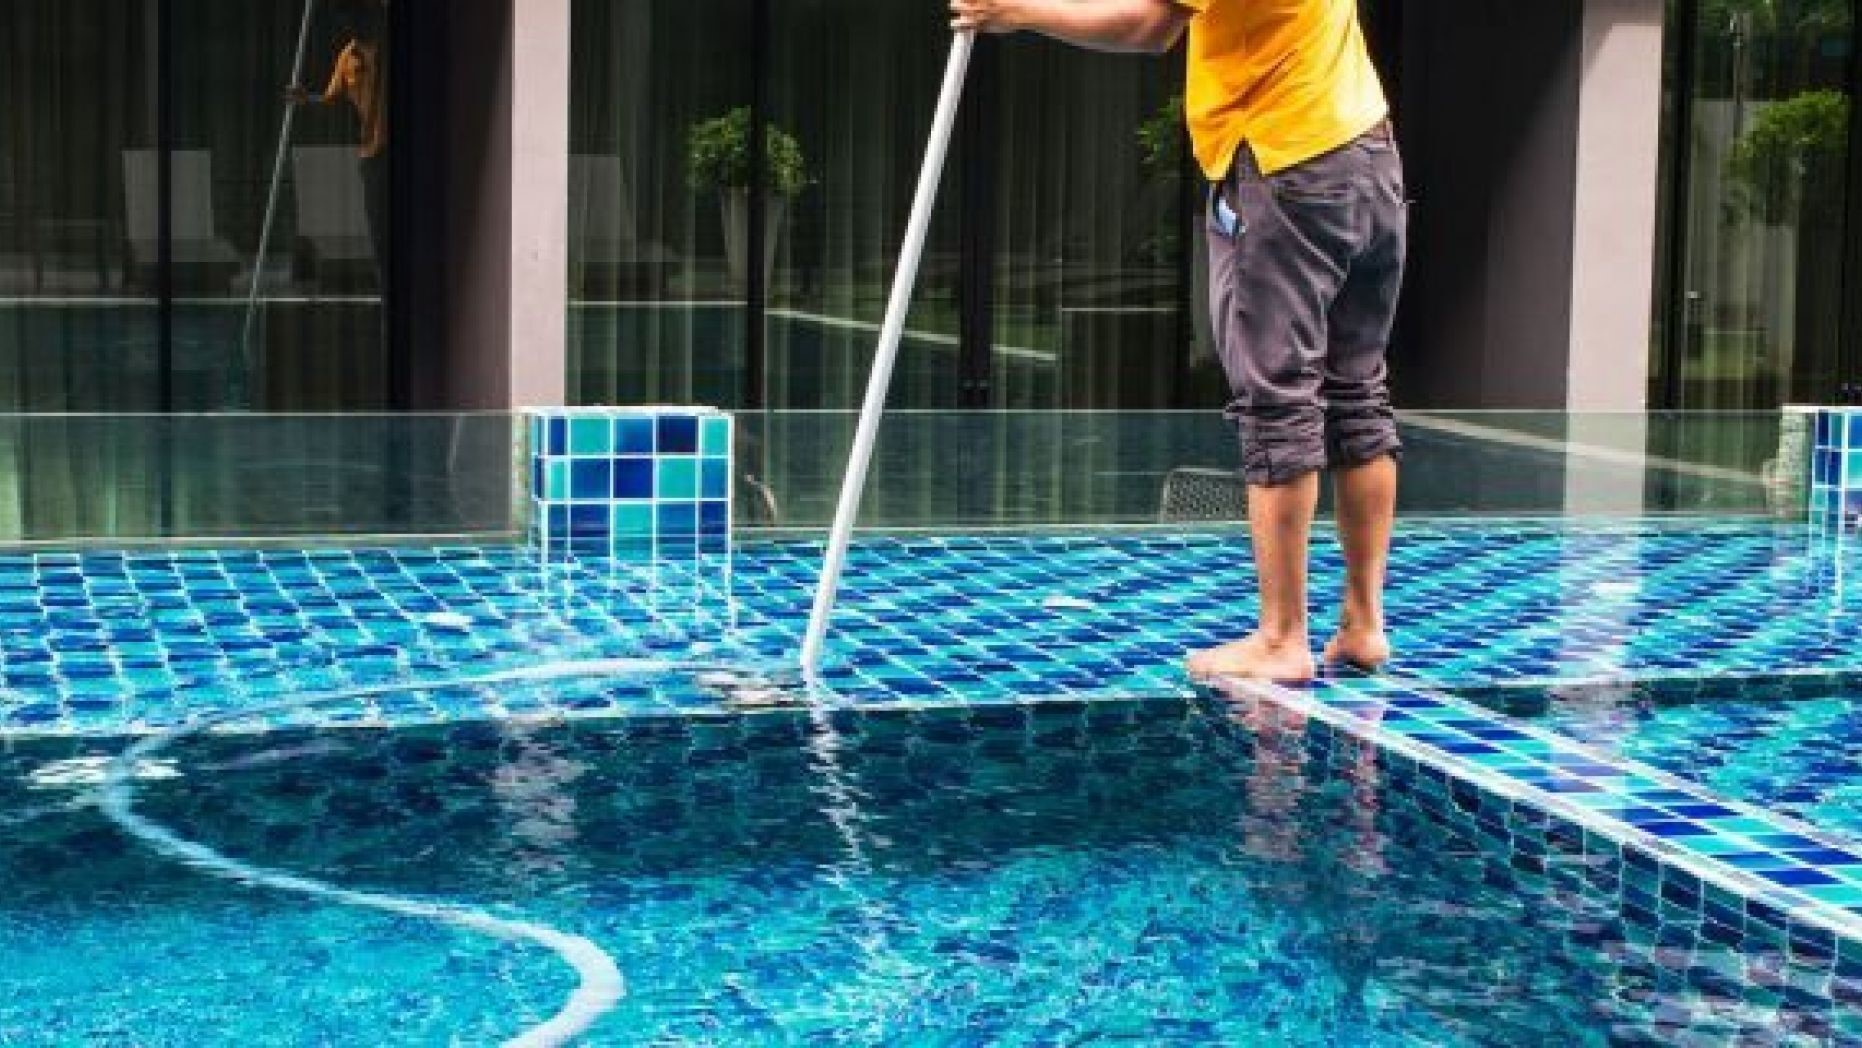 image - How to Clean a Pool In 6 Easy Steps